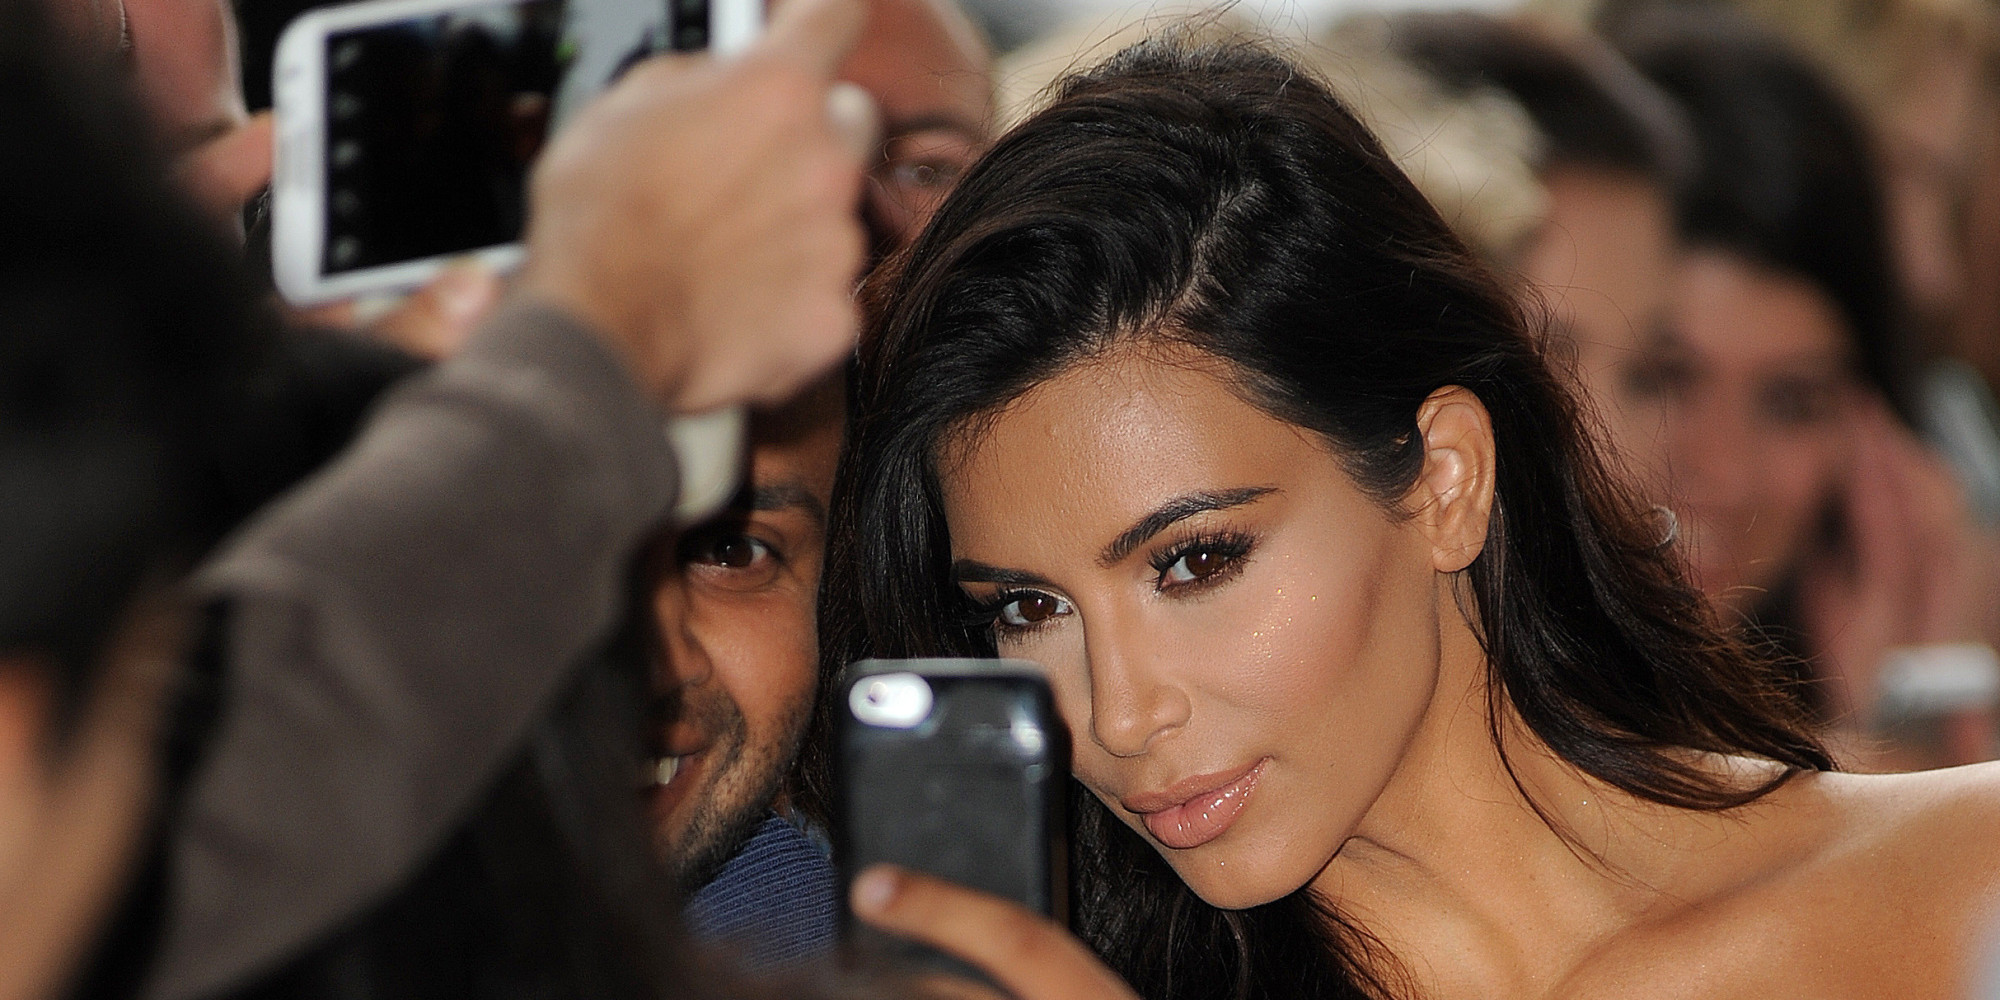 Kim Kardashian in London Celebrity Sightings - September 3, 2014